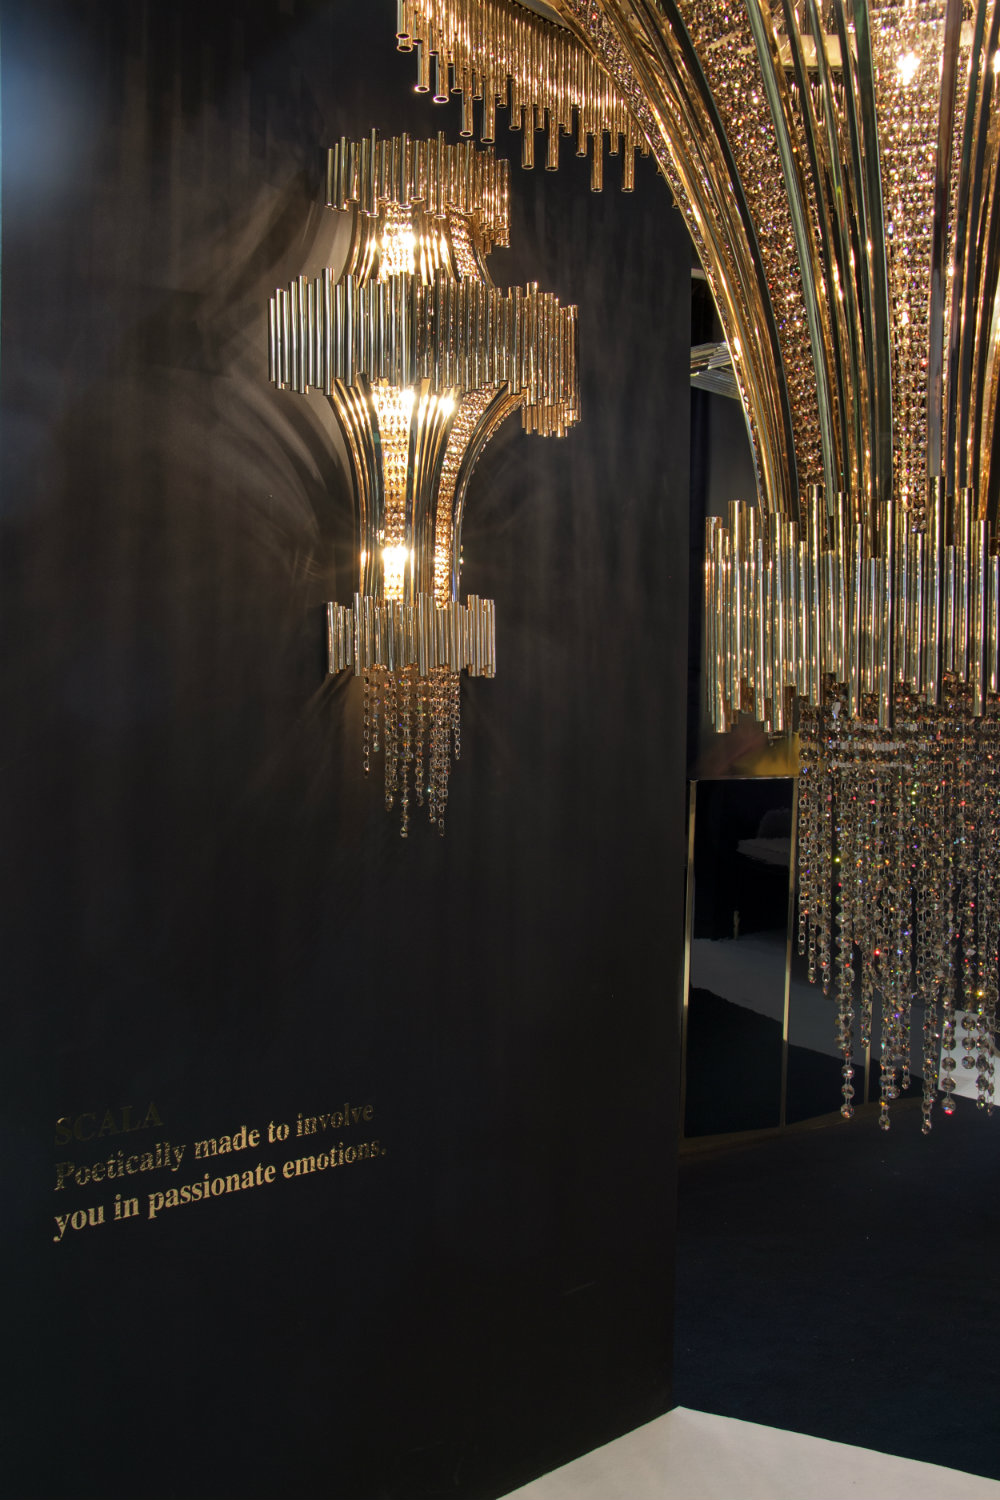 LUXXU's Presence at Maison et Objet in Pictures 03 Maison et Objet LUXXU's Presence at Maison et Objet in Pictures LUXXUs Presence at Maison et Objet in Pictures 03